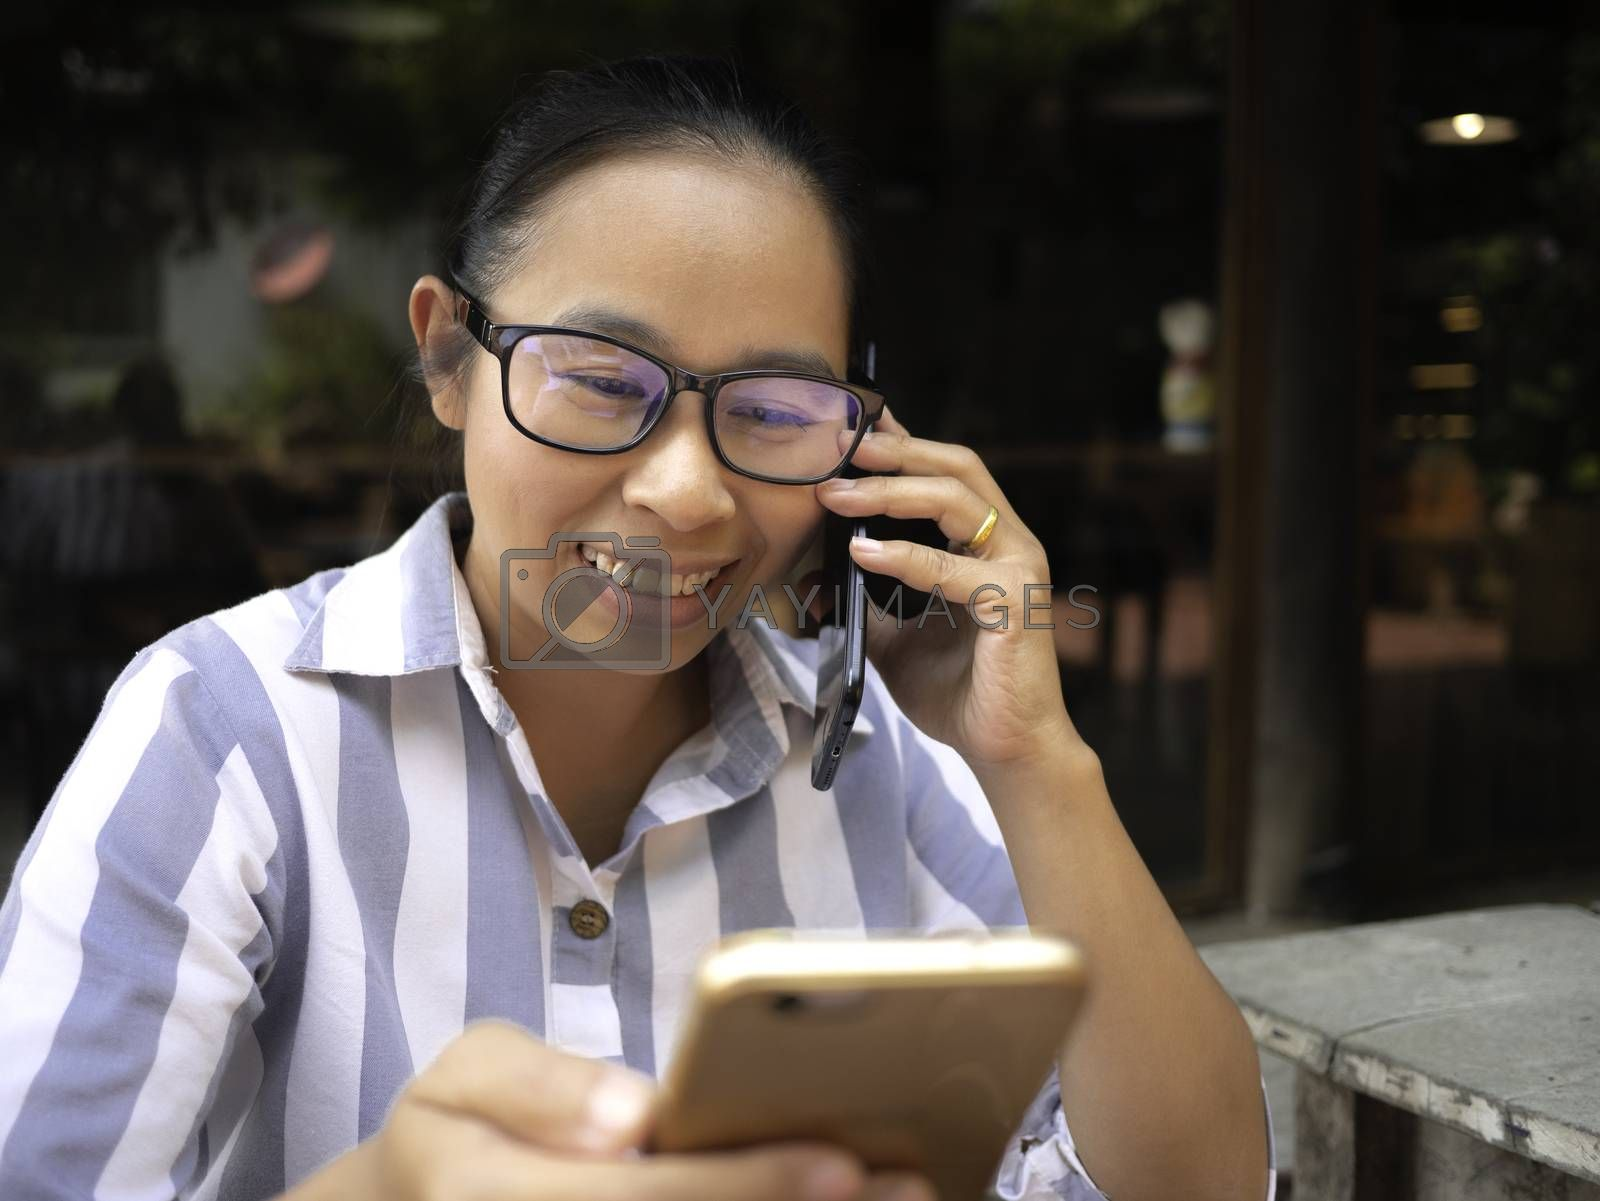 Cheerful business Asian young woman holding smartphone for work while talking on the phone at coffee cafe, Happy and smile face. by TEERASAK